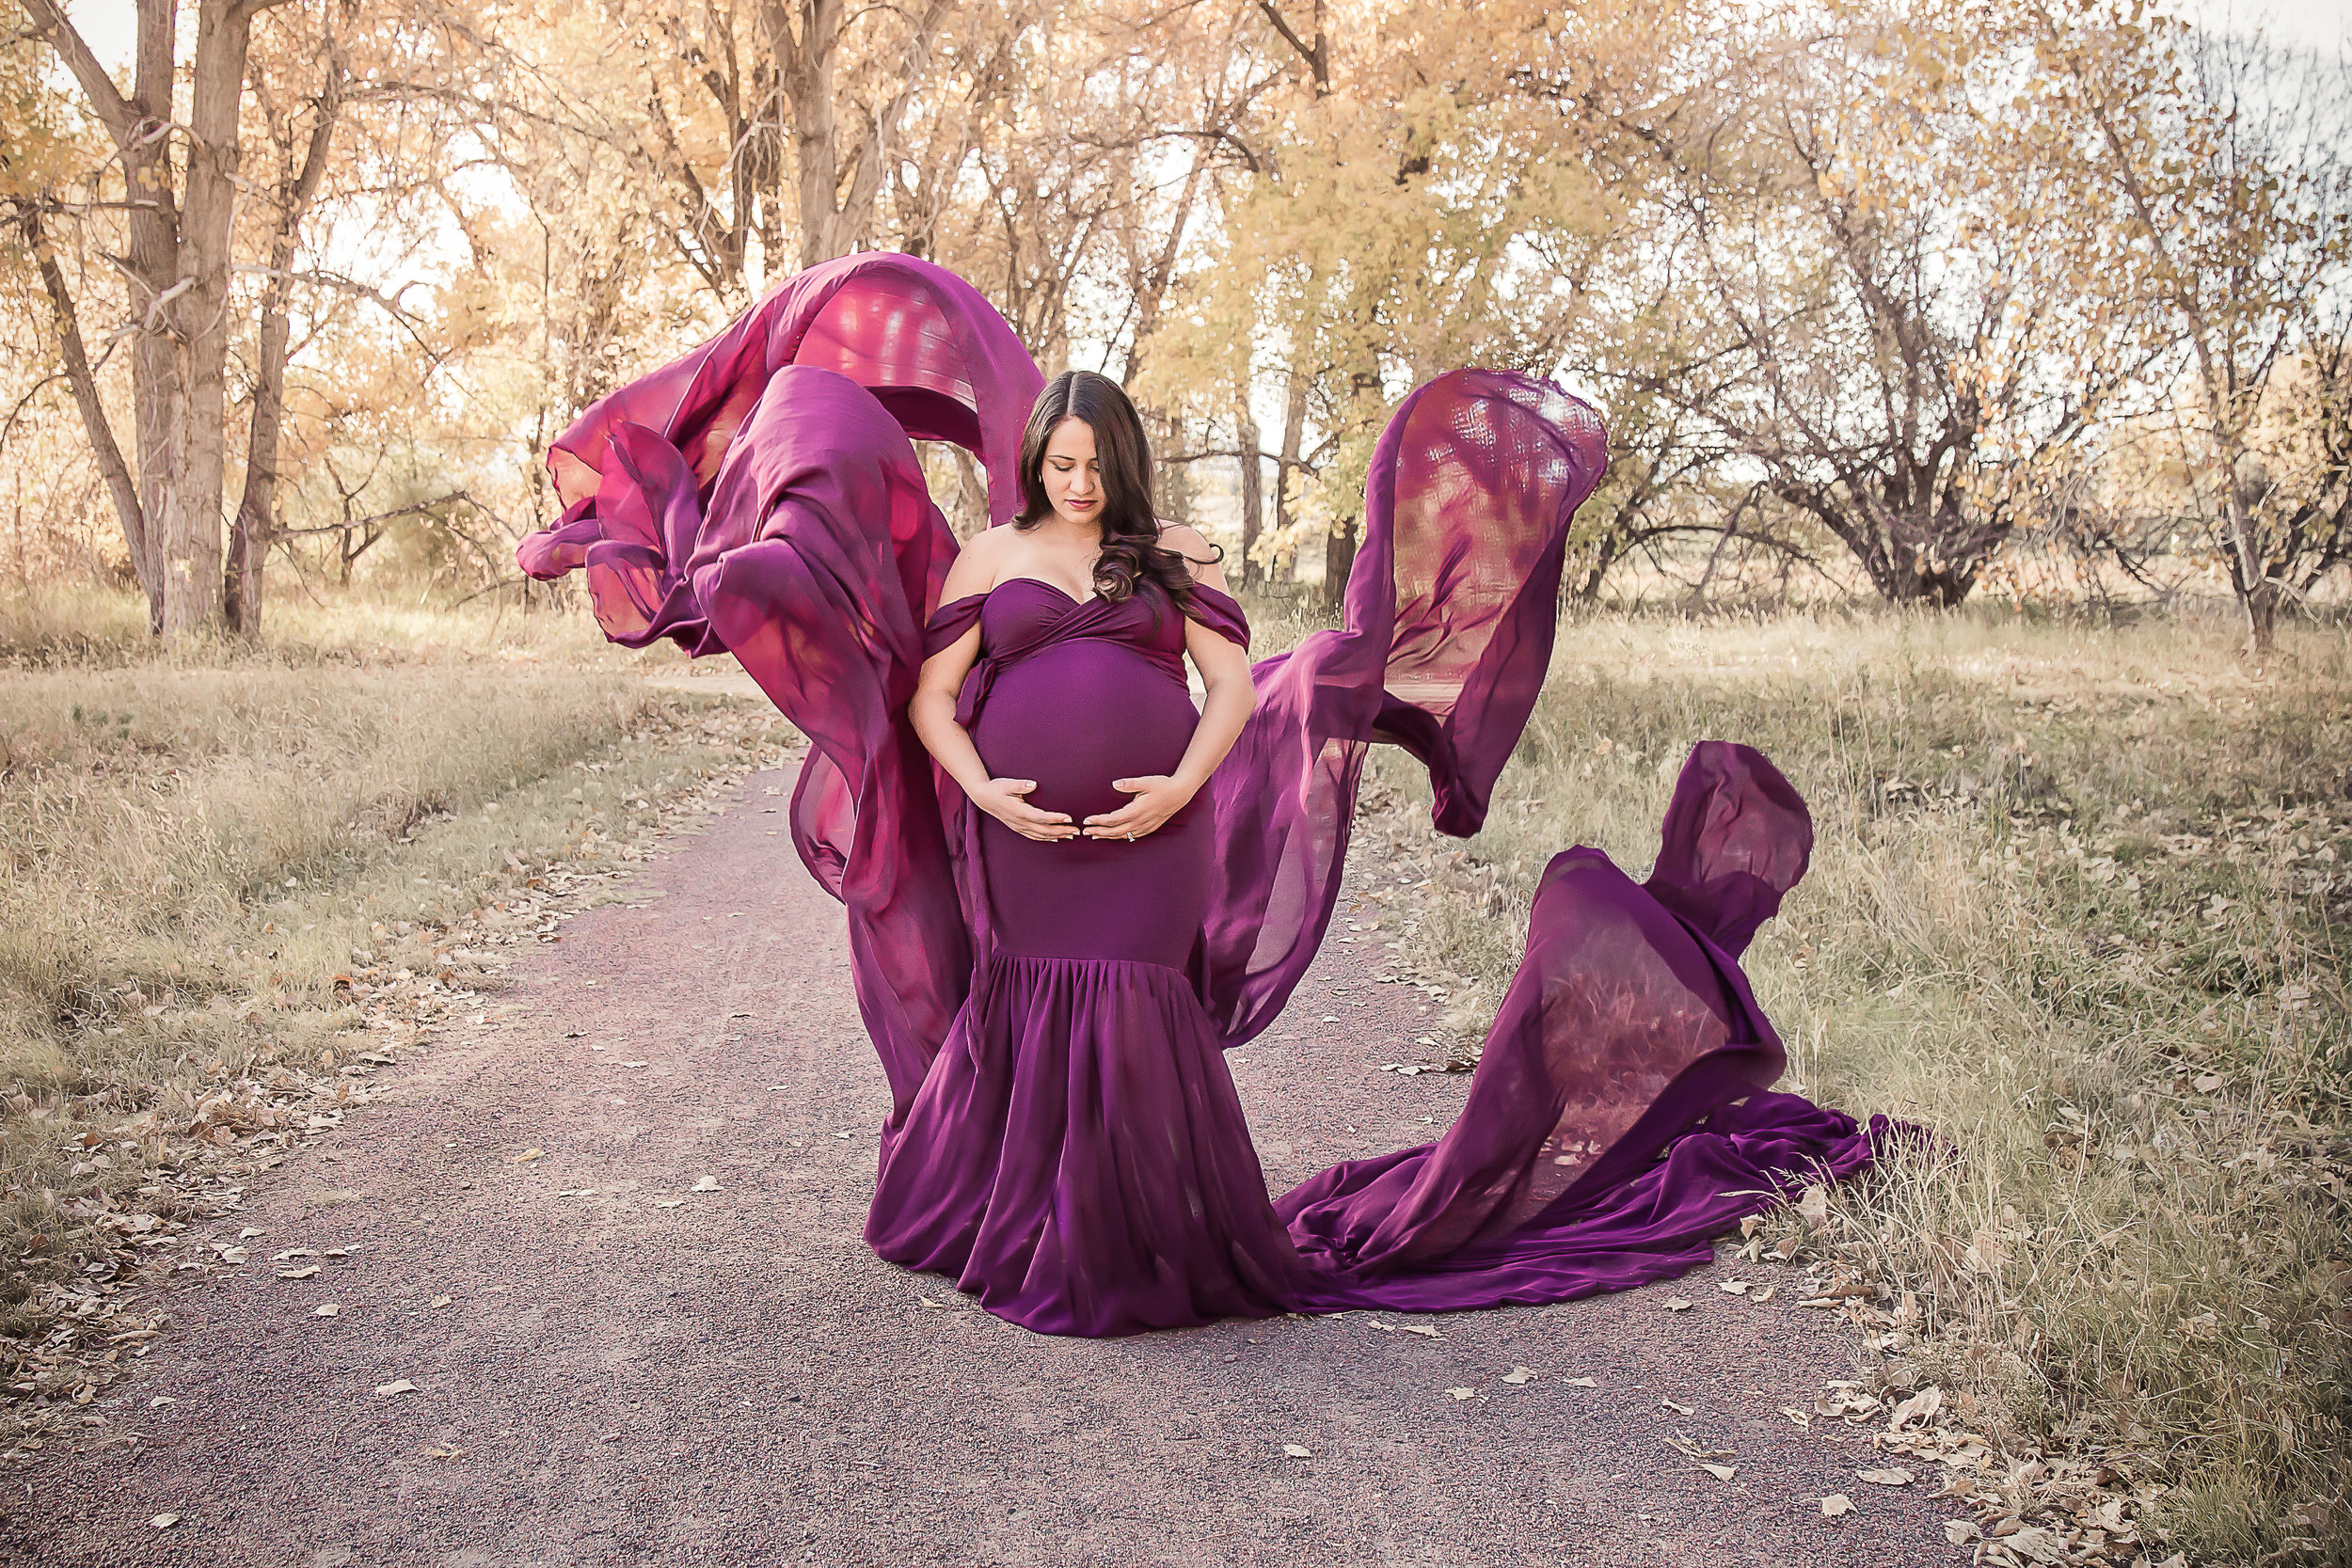 flowing maternity gown in the fall